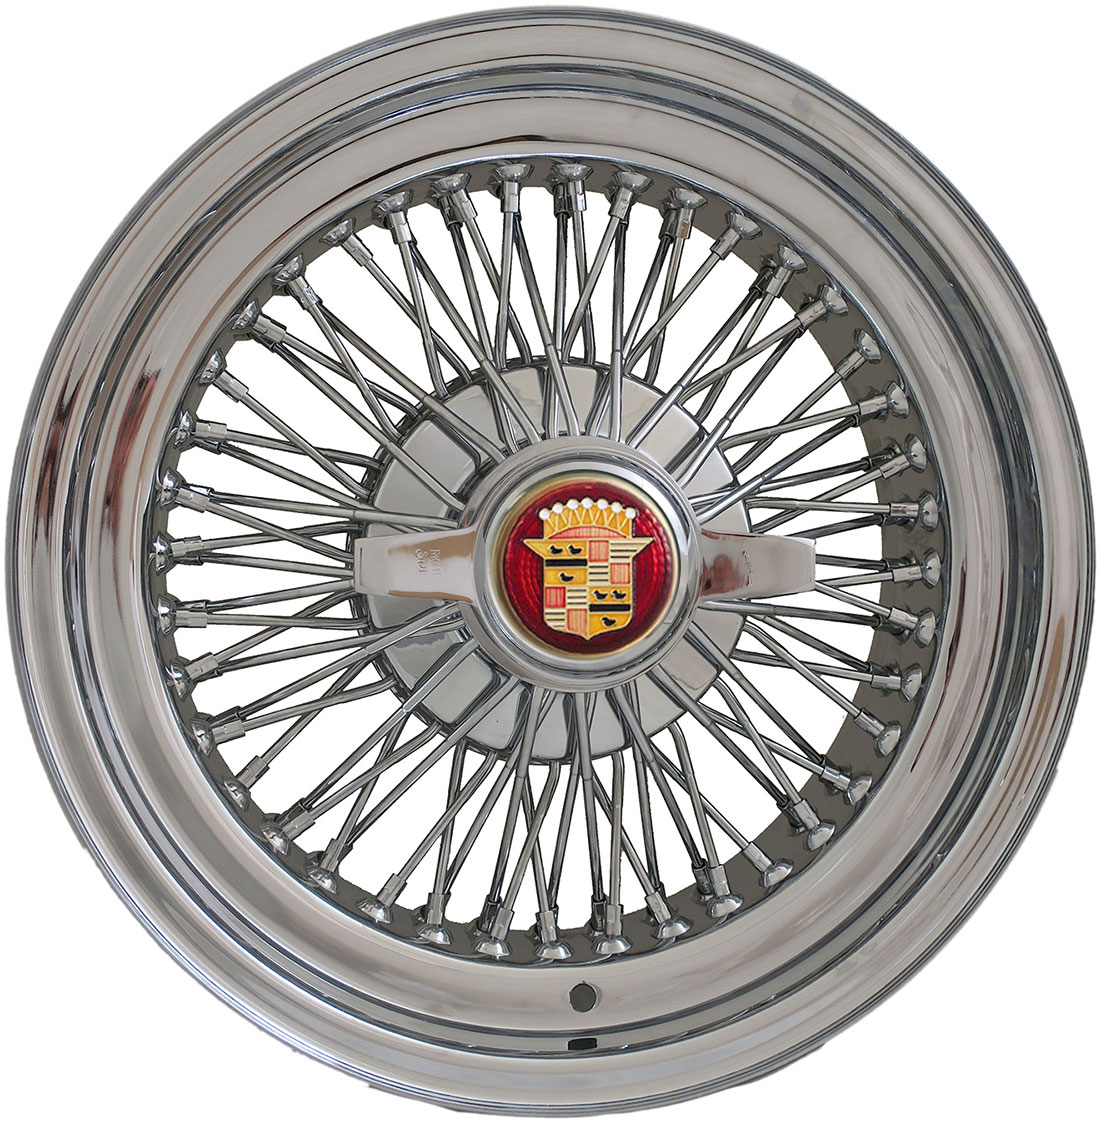 Cadillac wire wheel with two bladed spinner.